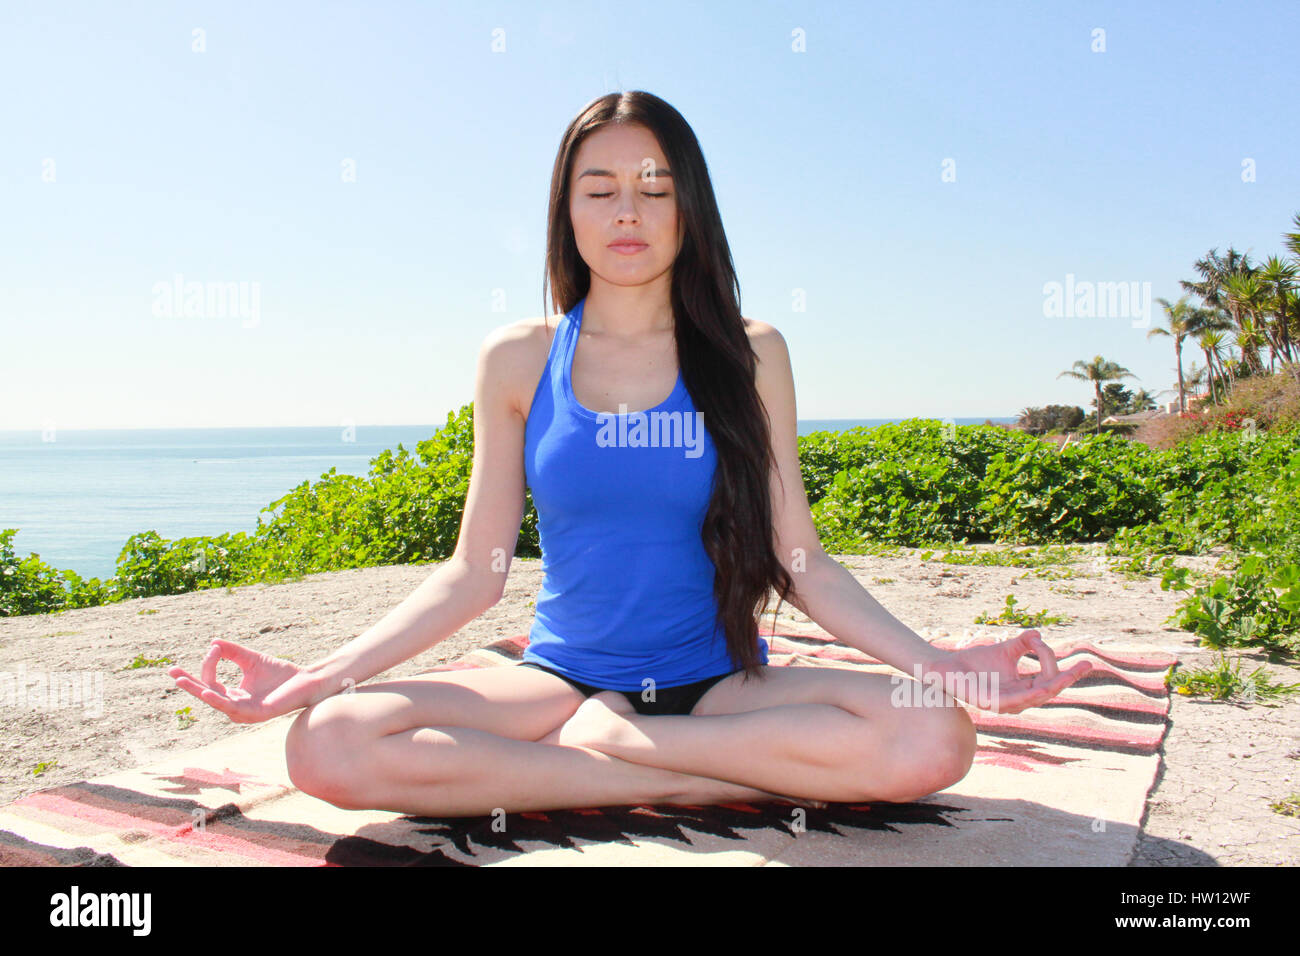 Beautiful woman meditating outdoors with eyes closed. - Stock Image